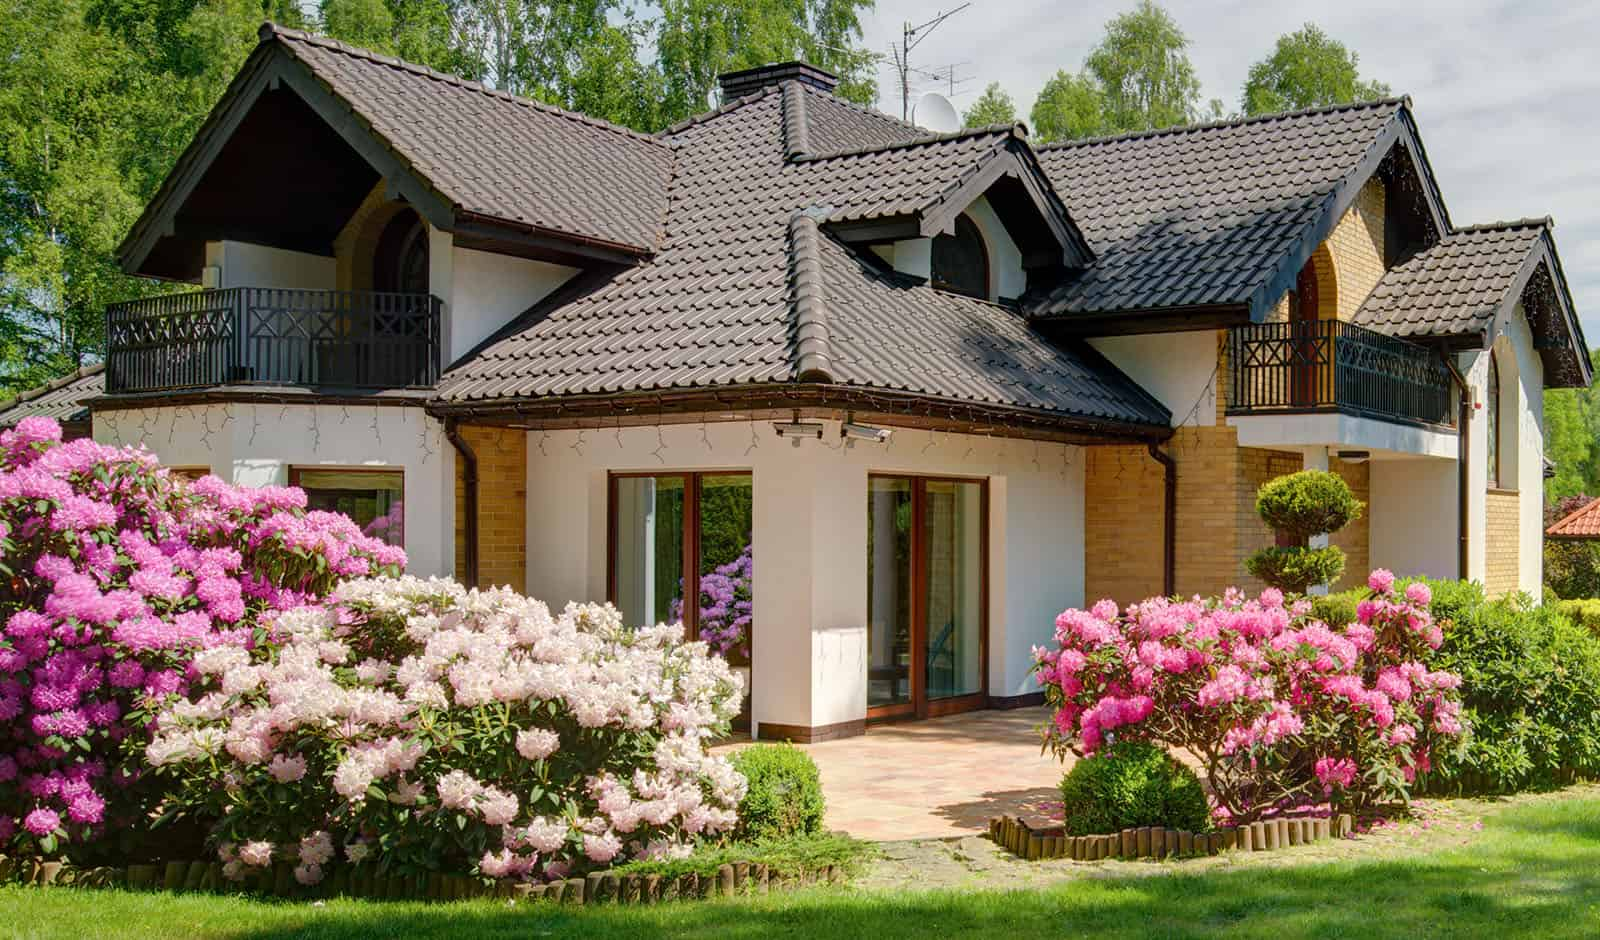 House with beautiful garden